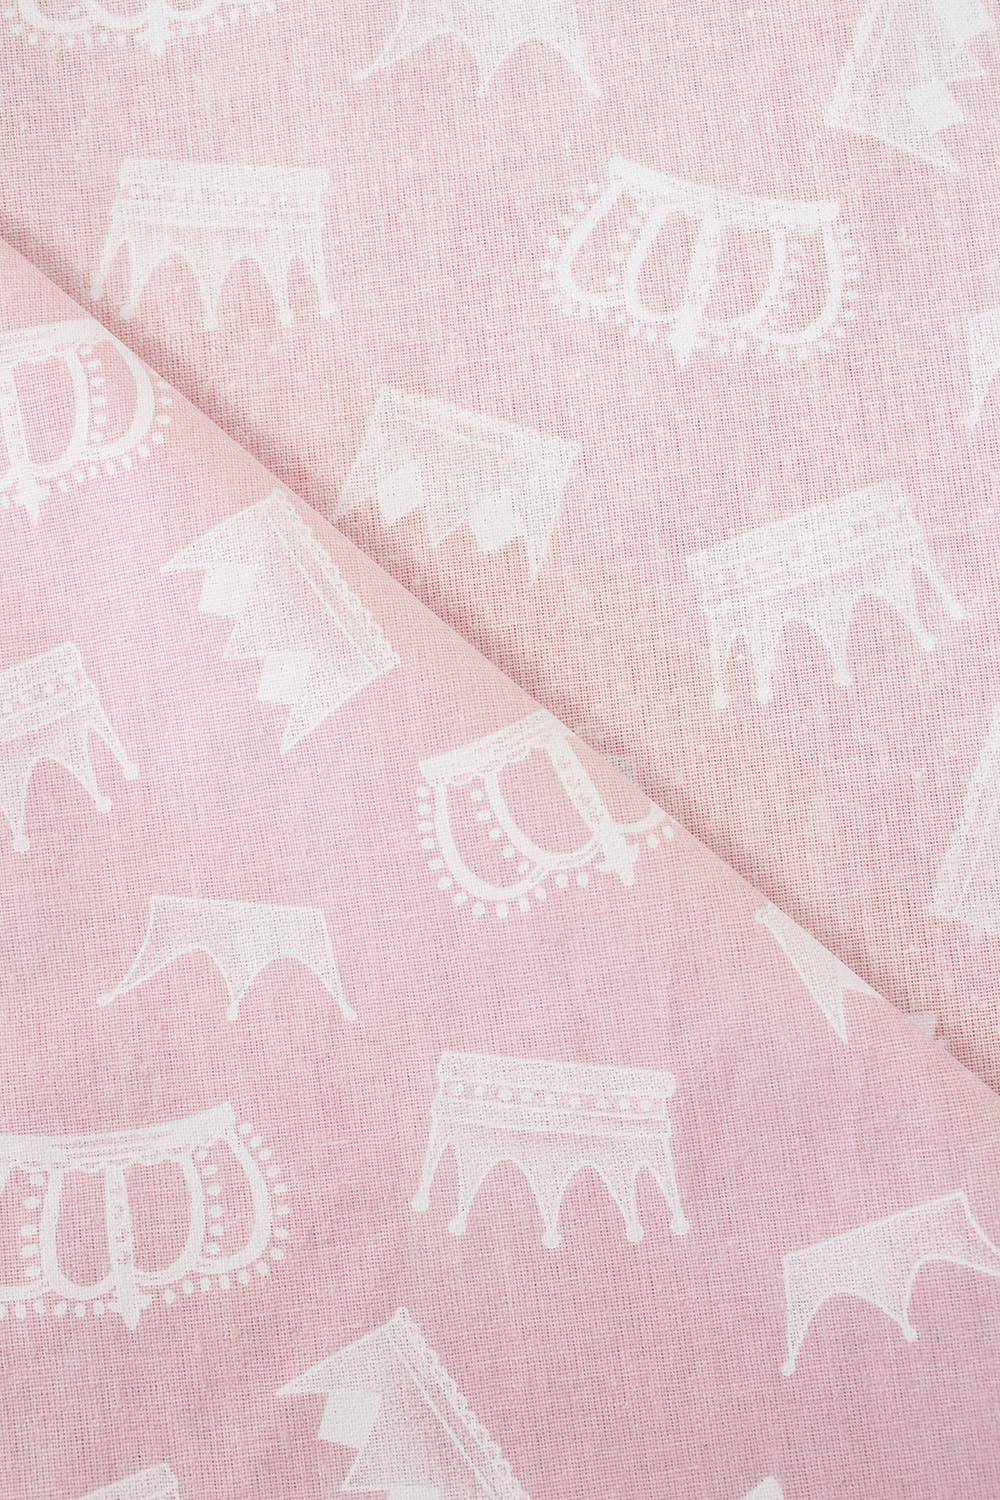 Fabric - Norris - Pink With Crowns - 165 cm - 145 g/m2